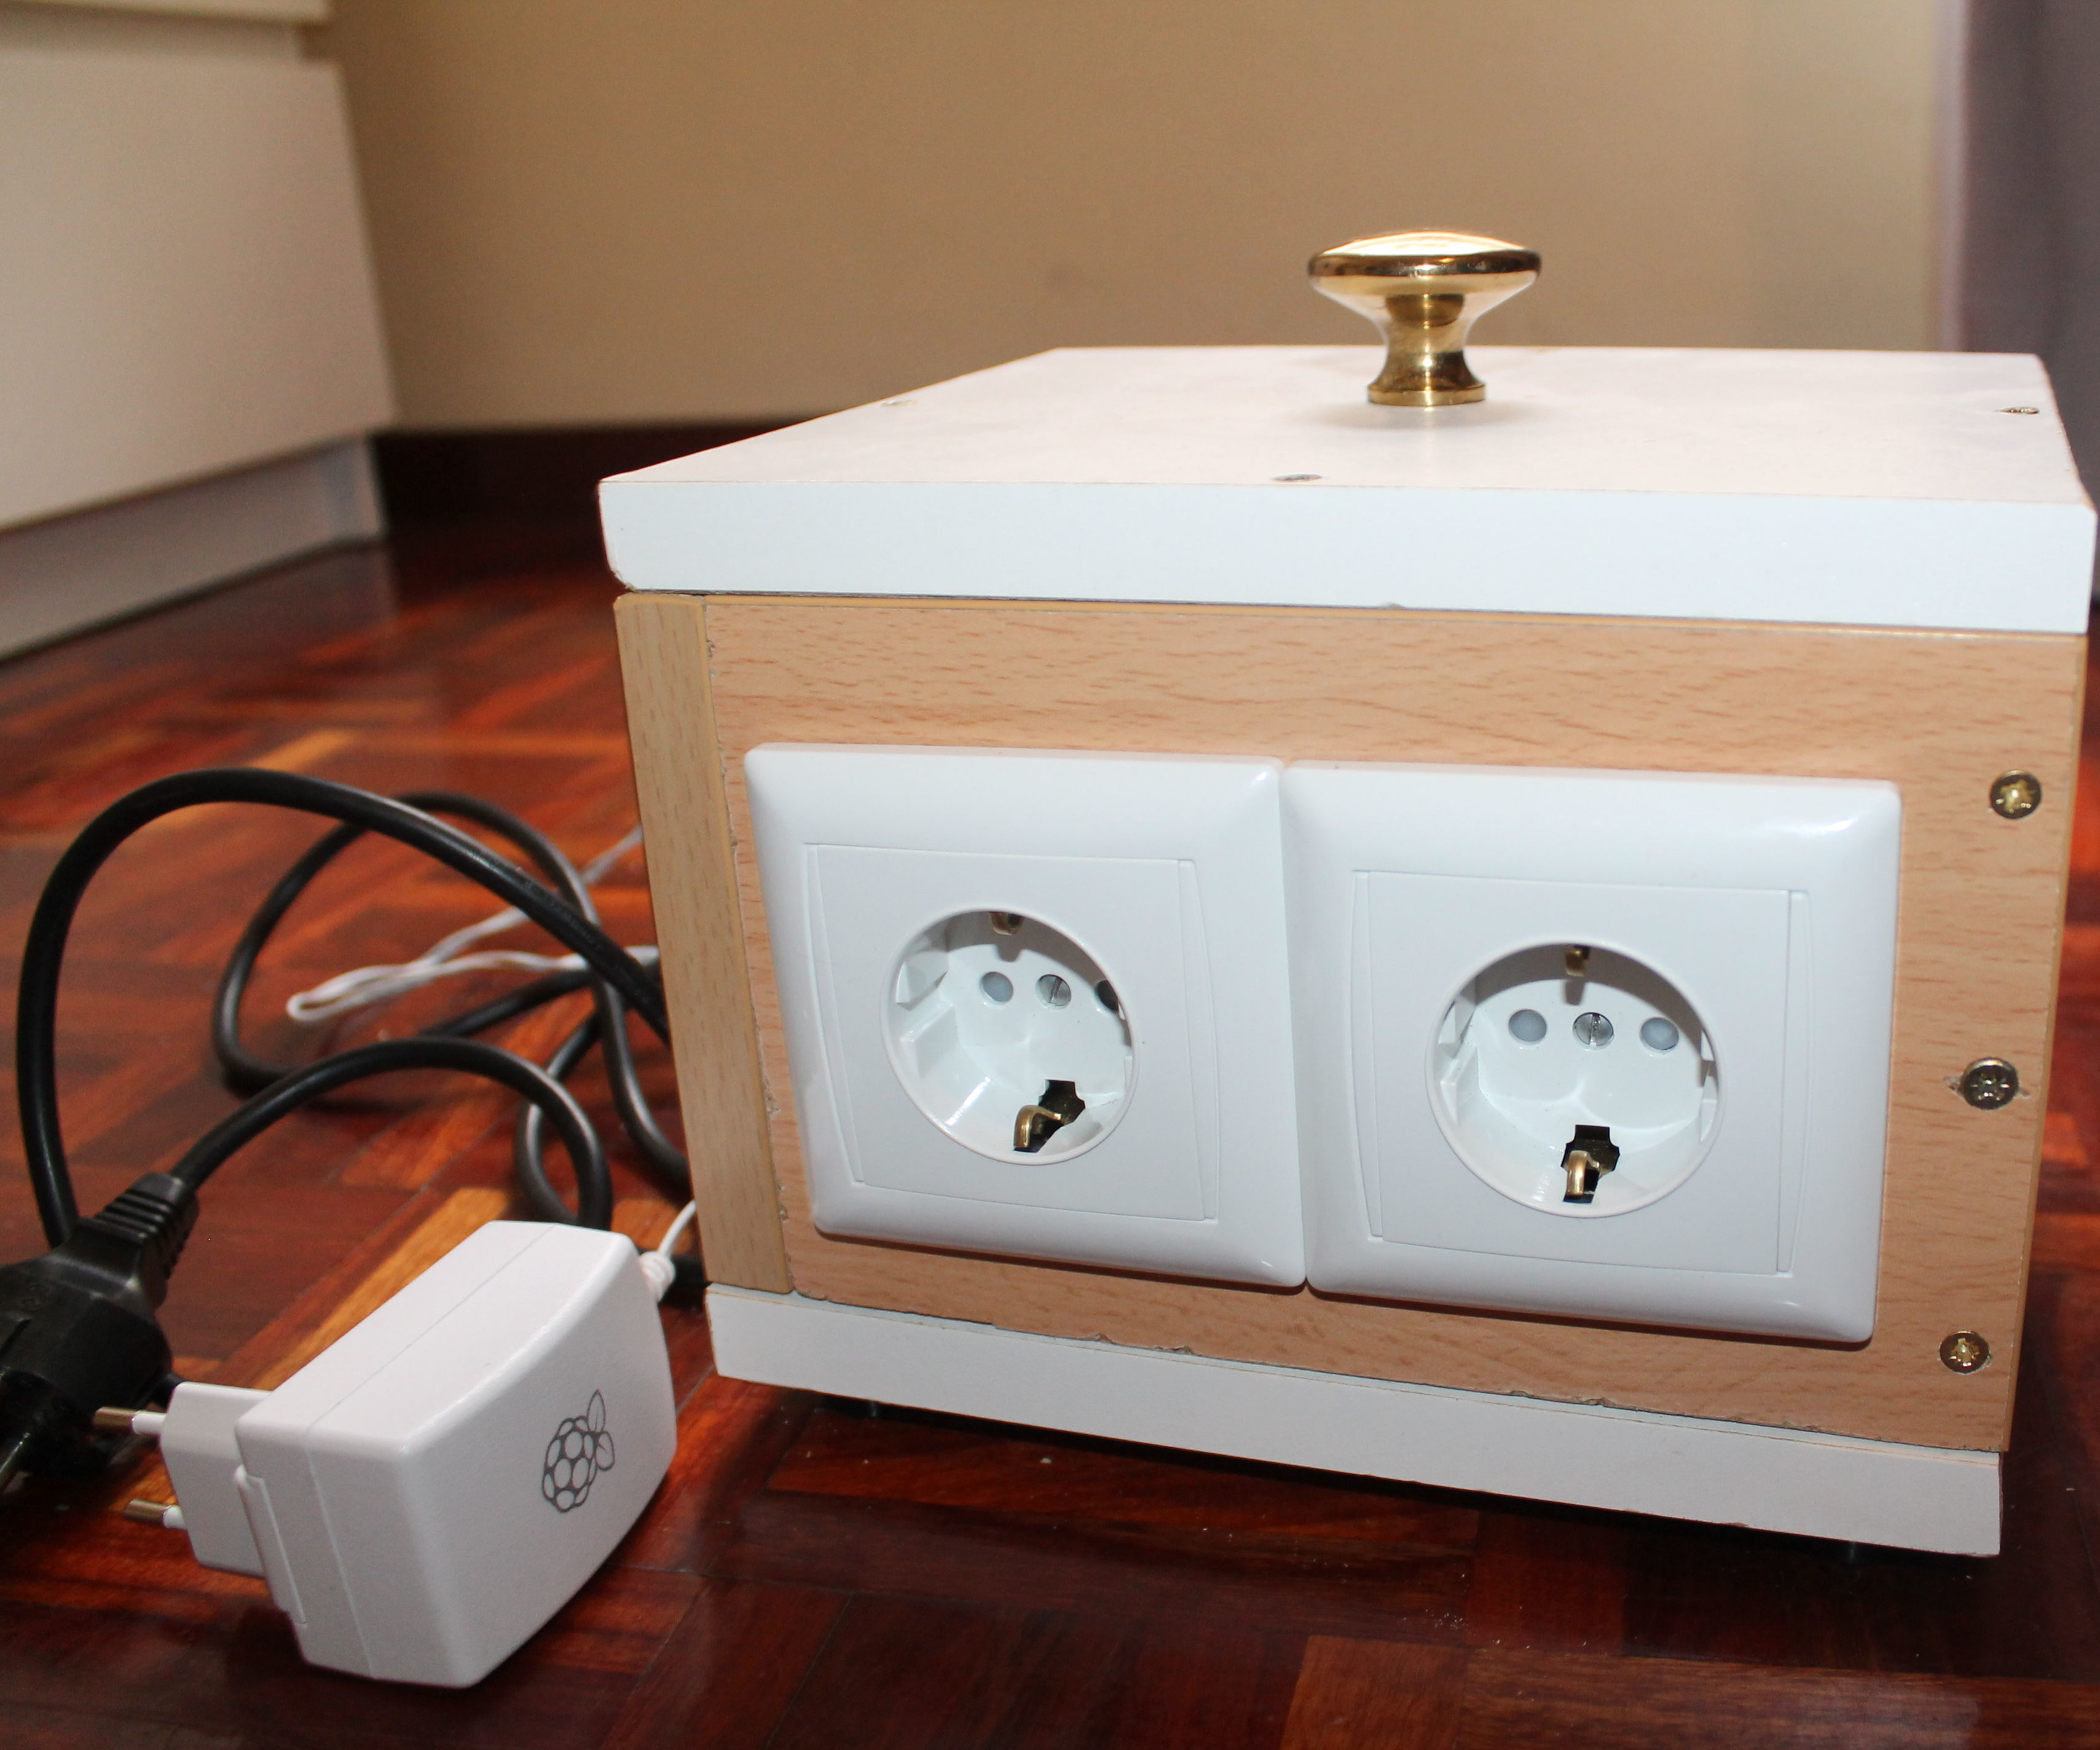 Pi Outlet Relay Control using Cayenne